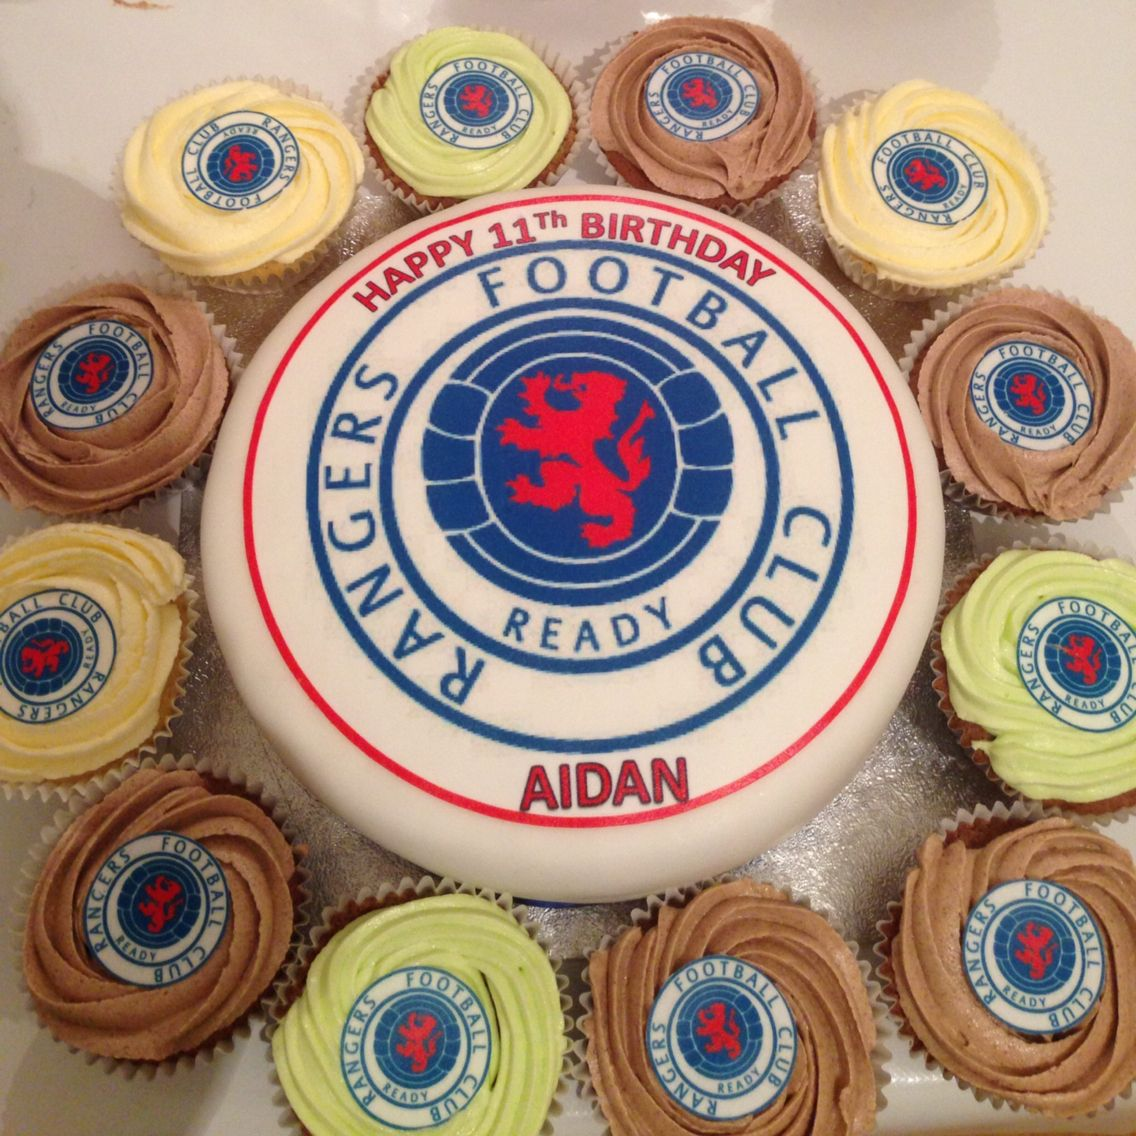 Rangers fc cake and cupcakes